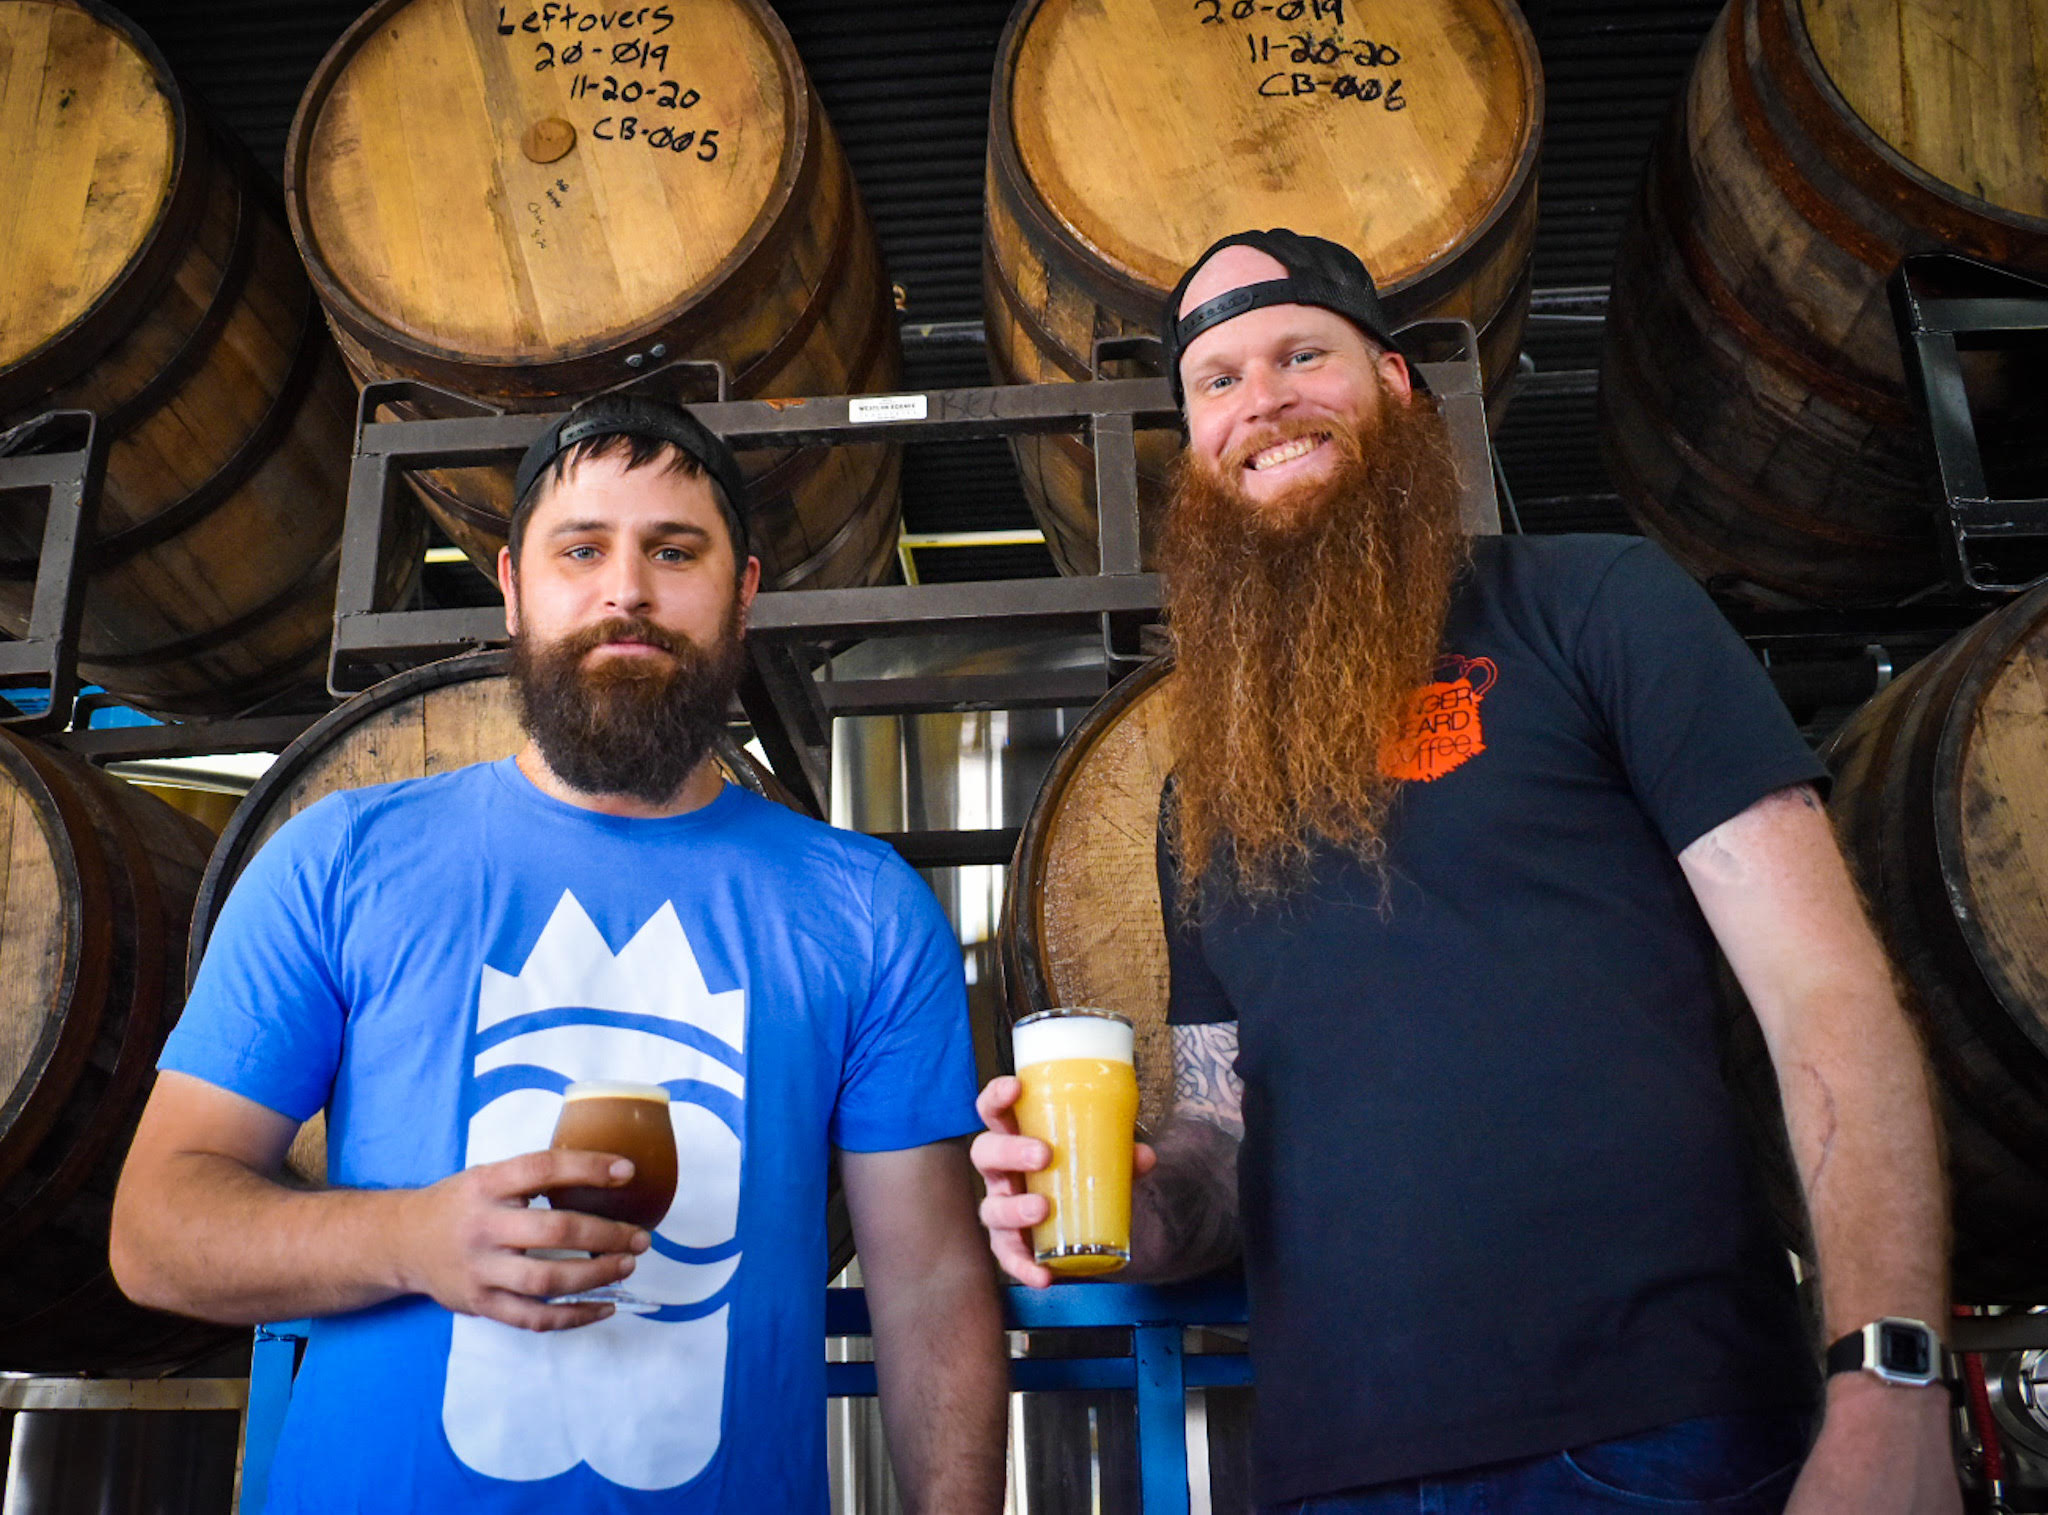 Magnanimous Coffee founder Derek and Magnanimous Brewing brewer Eric